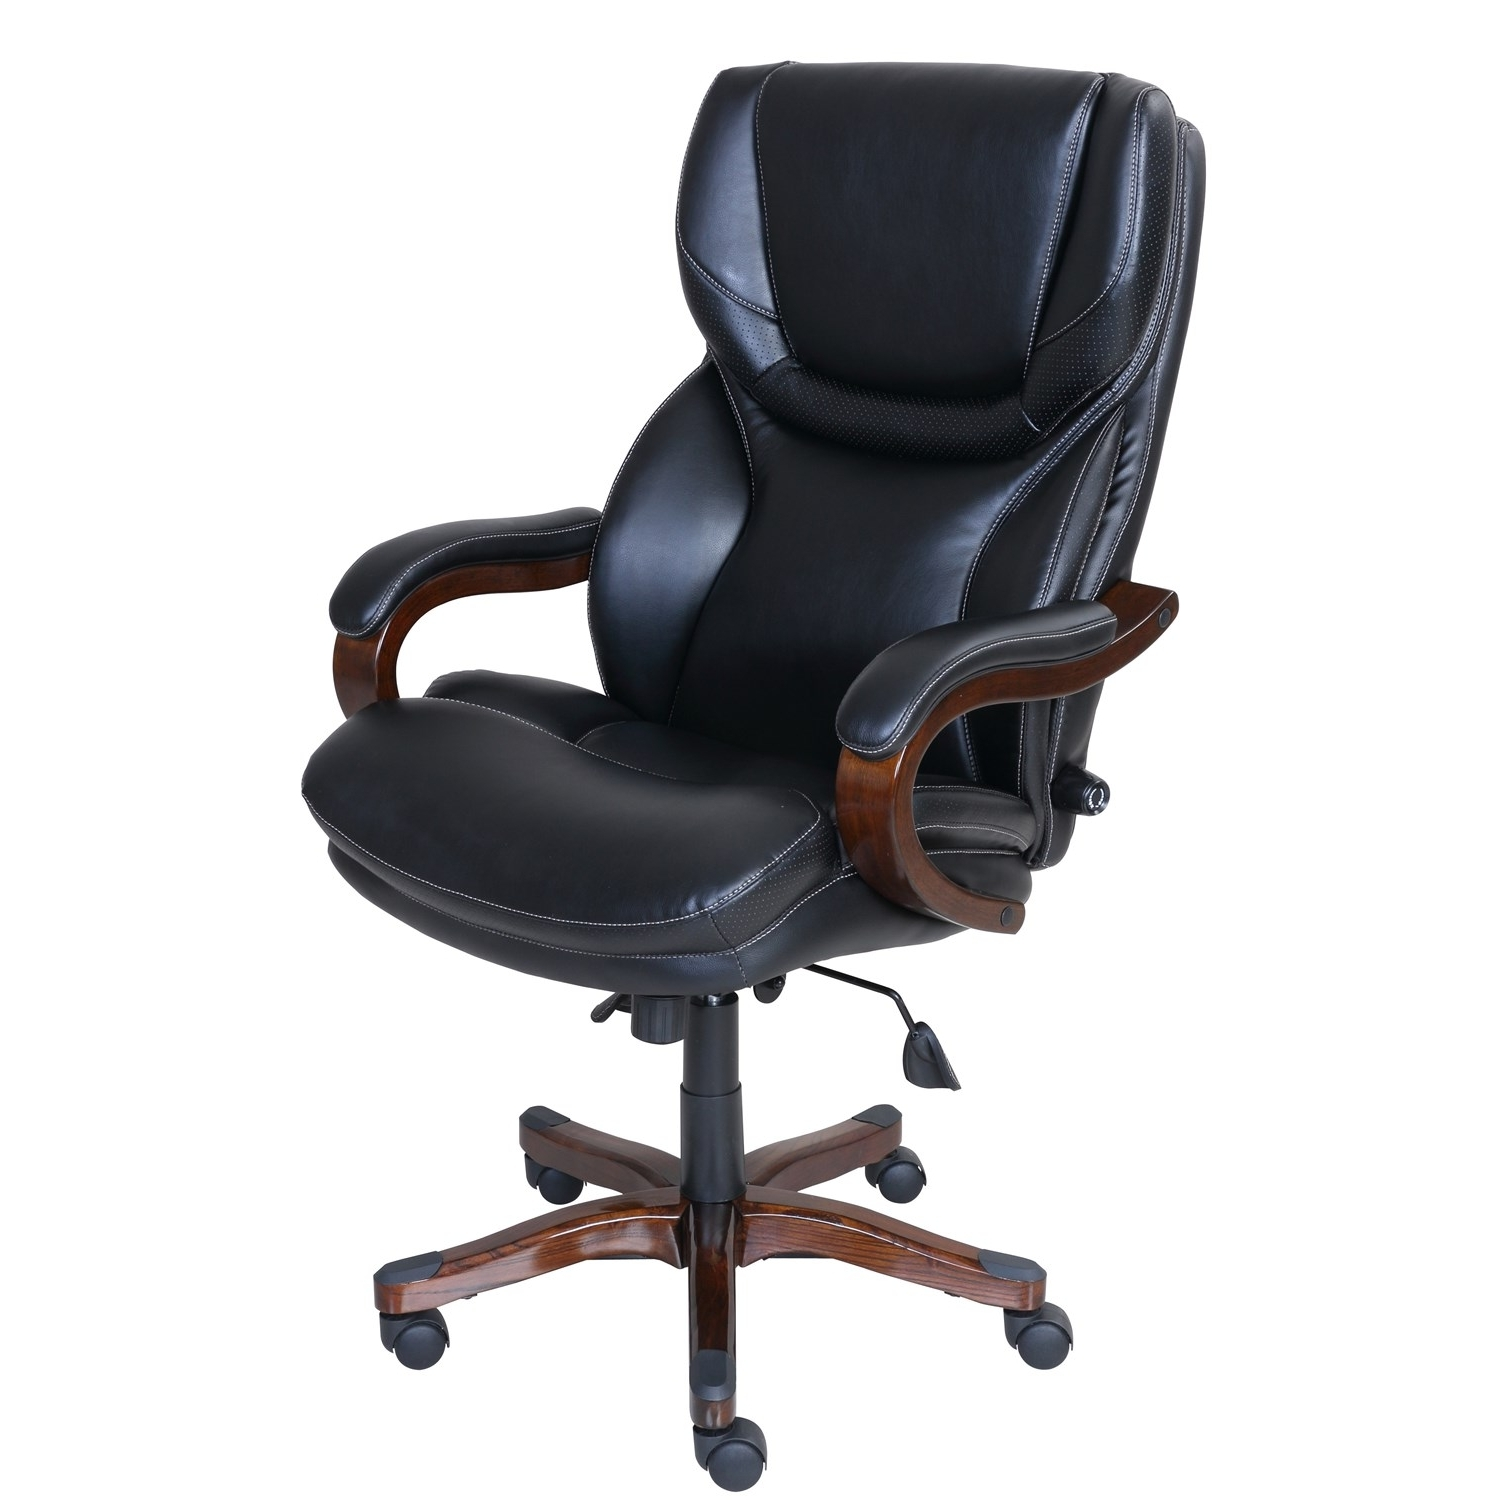 Most Current La Z Boy Executive Office Chairs Pertaining To Serta At Home 46859 Executive Office Chair In Black With Bonded (View 14 of 20)